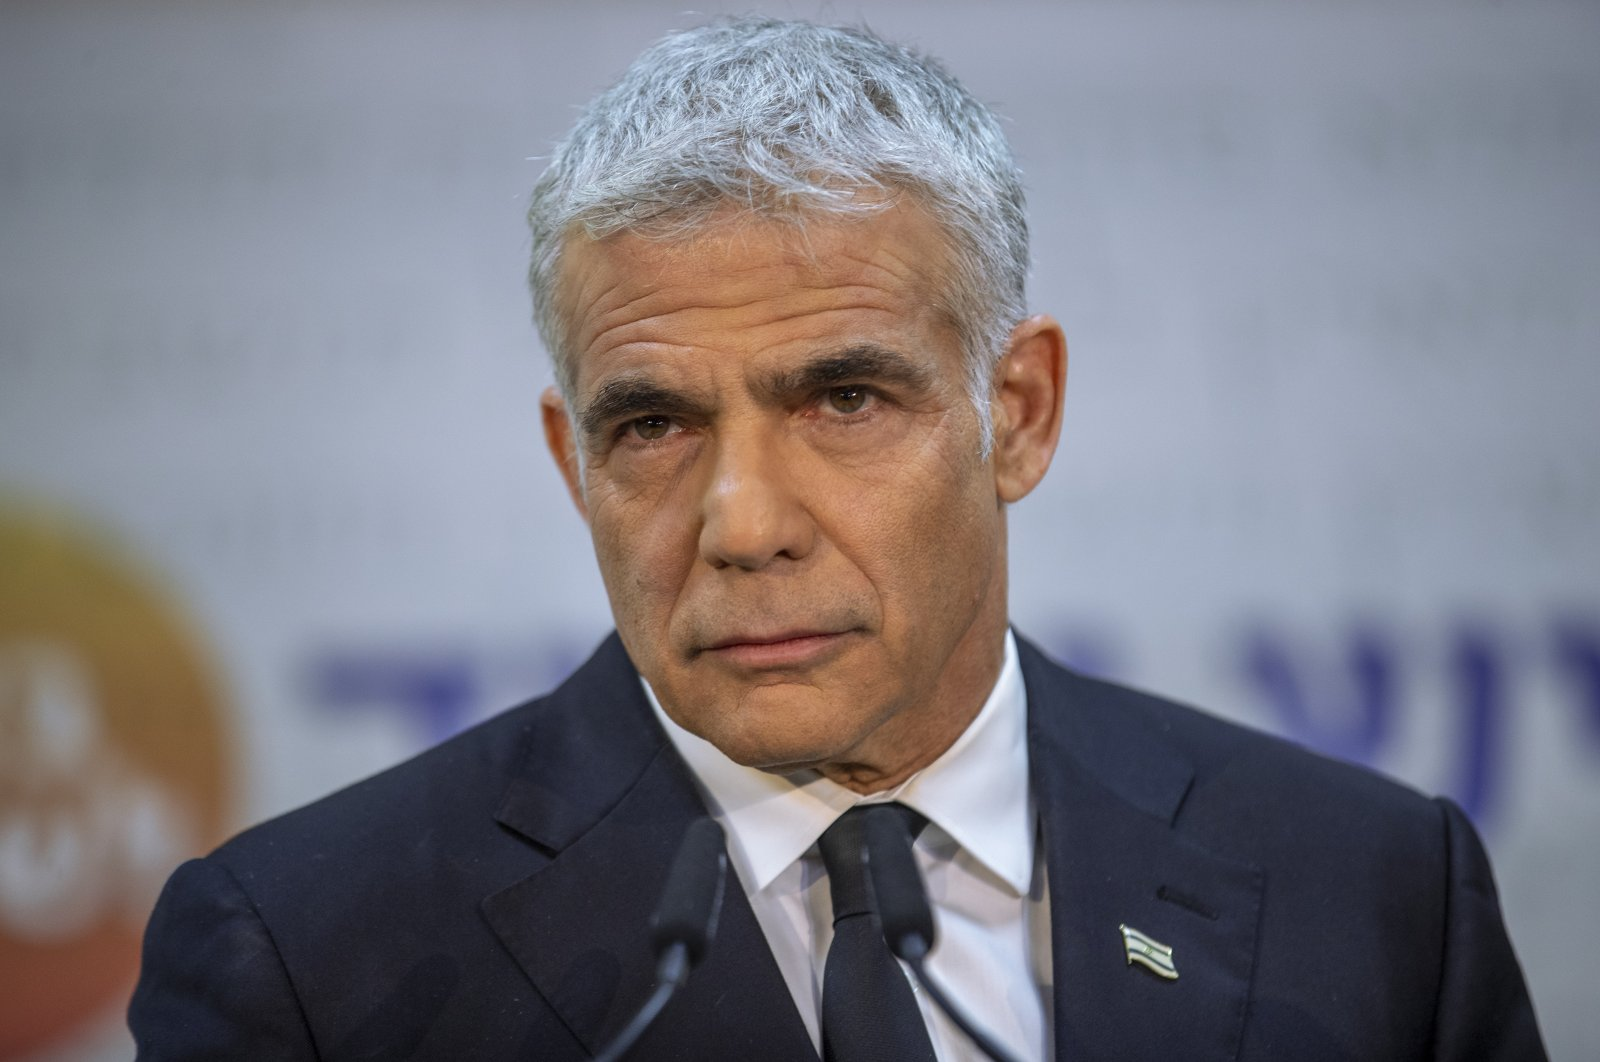 Israeli opposition leader Yair Lapid listens during a news conference in Tel Aviv, Israel, May 6, 2021. (AP Photo)